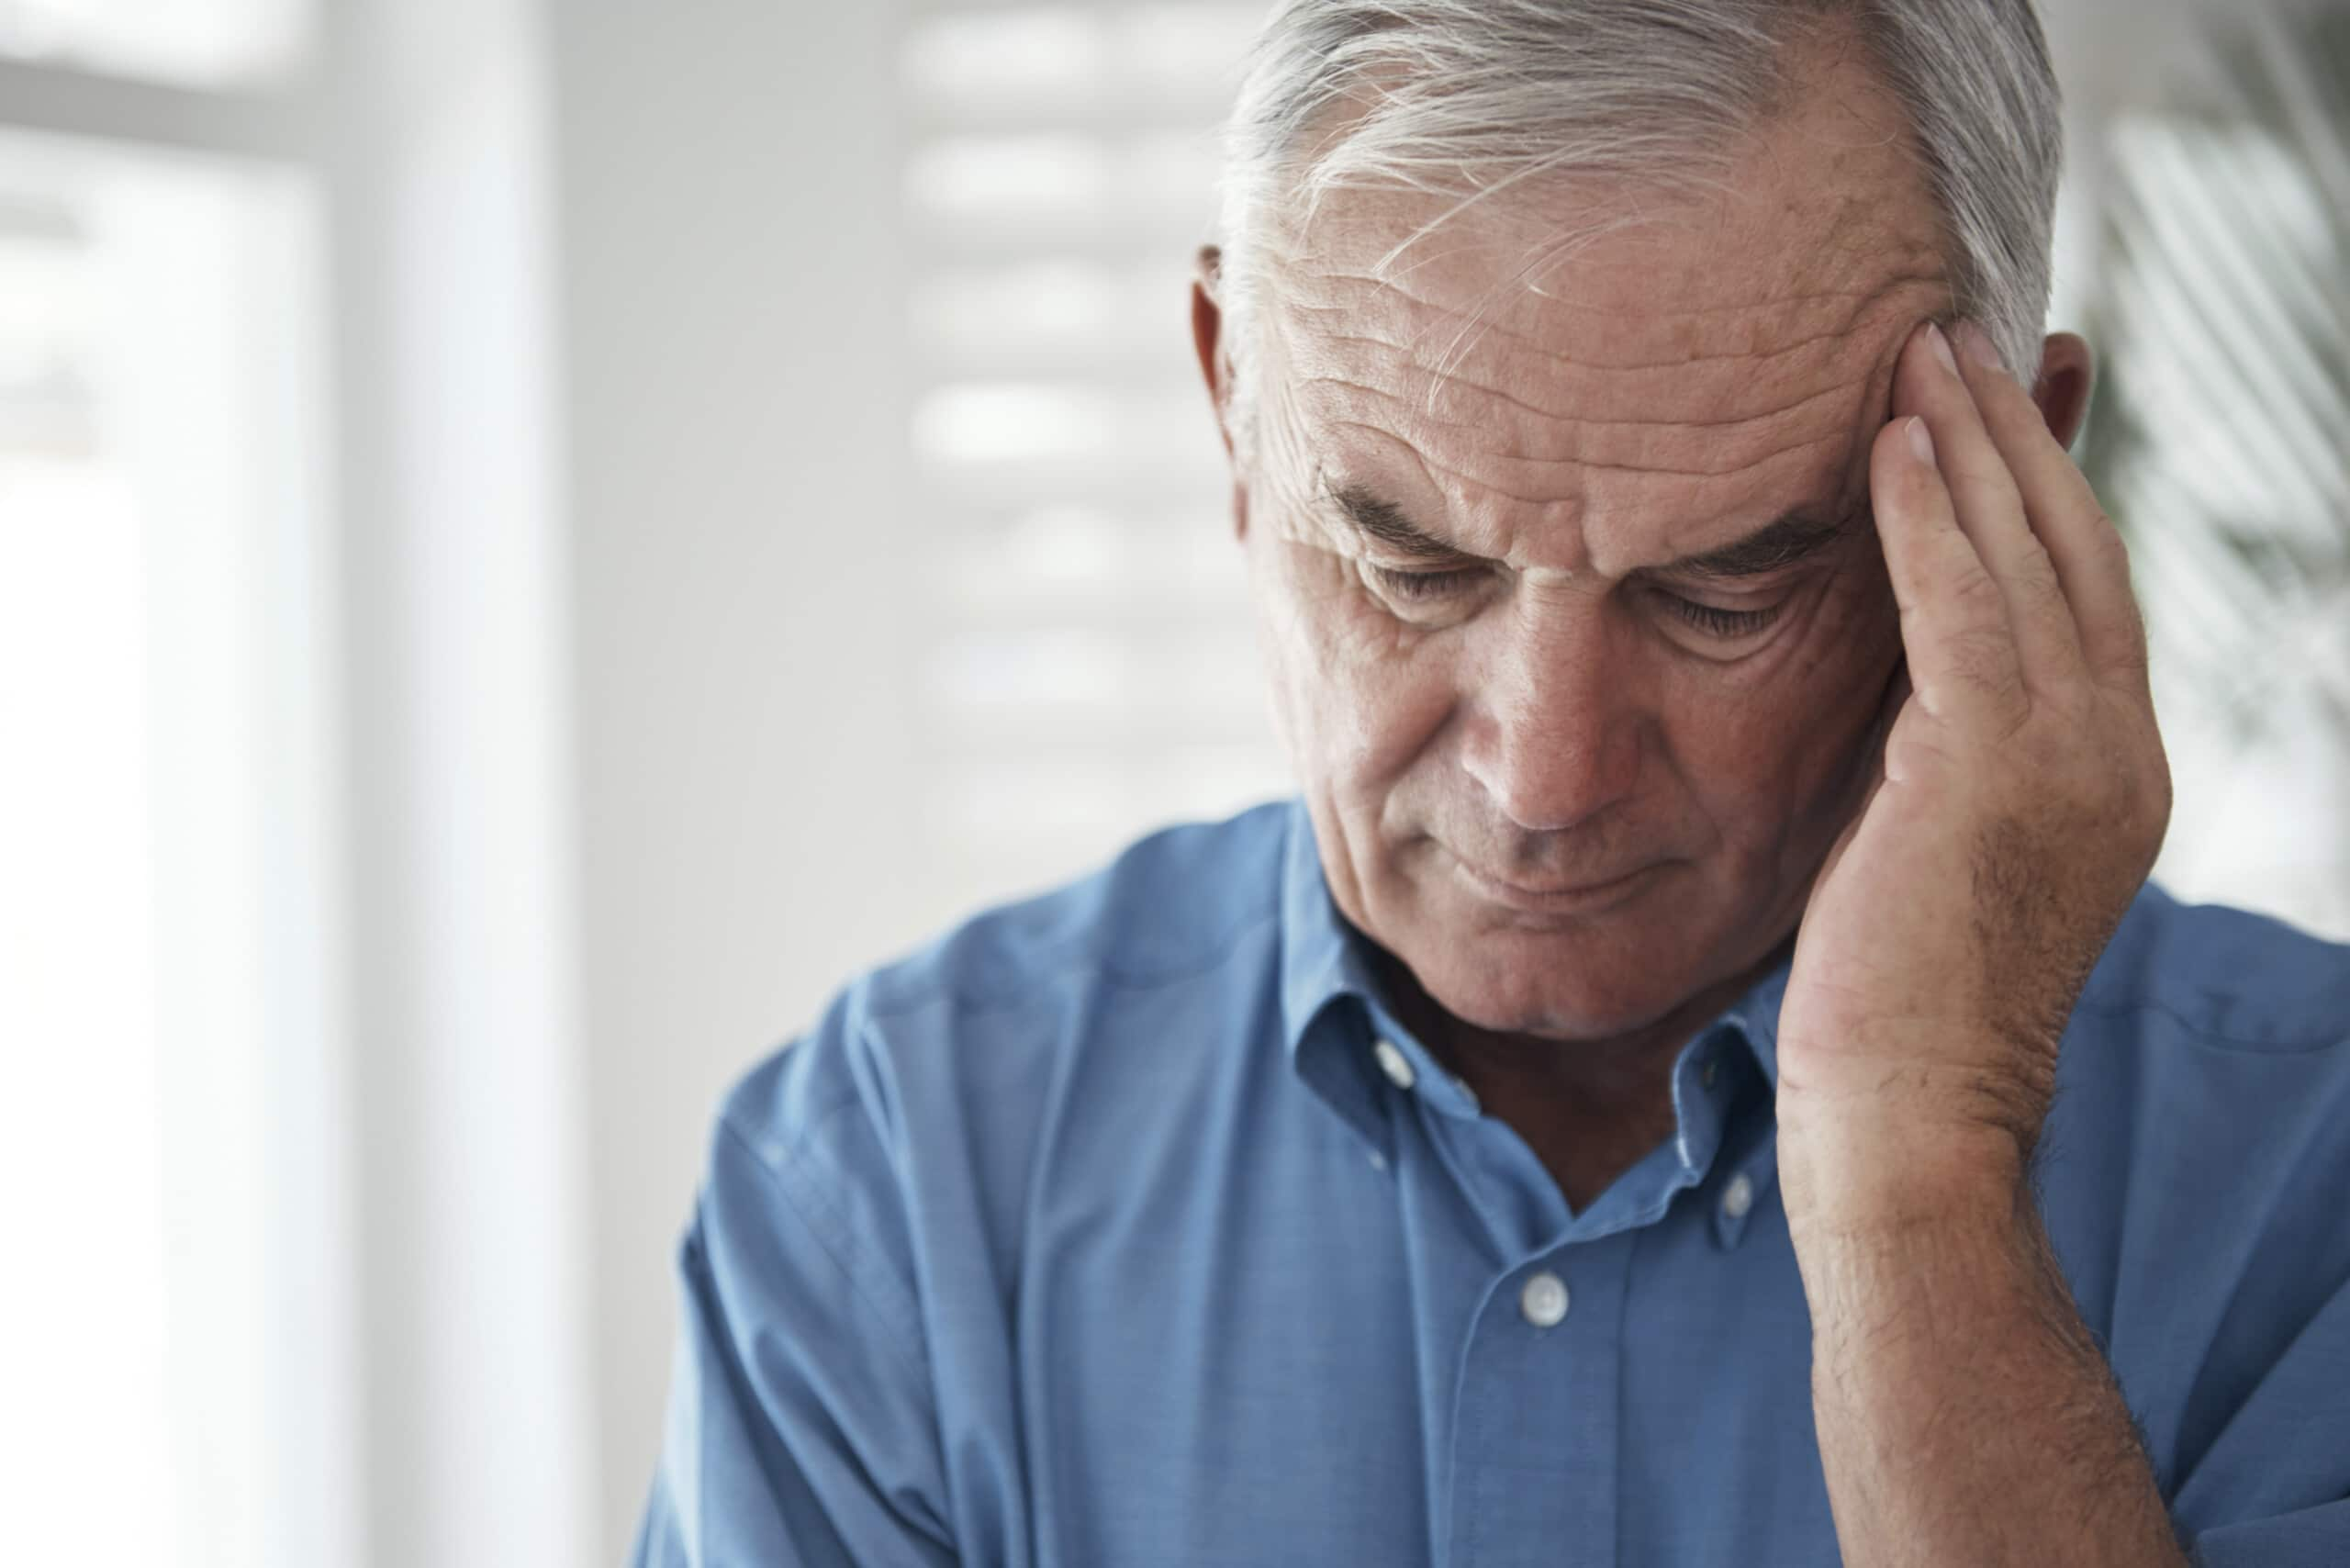 Older man rubbing forehead in pain